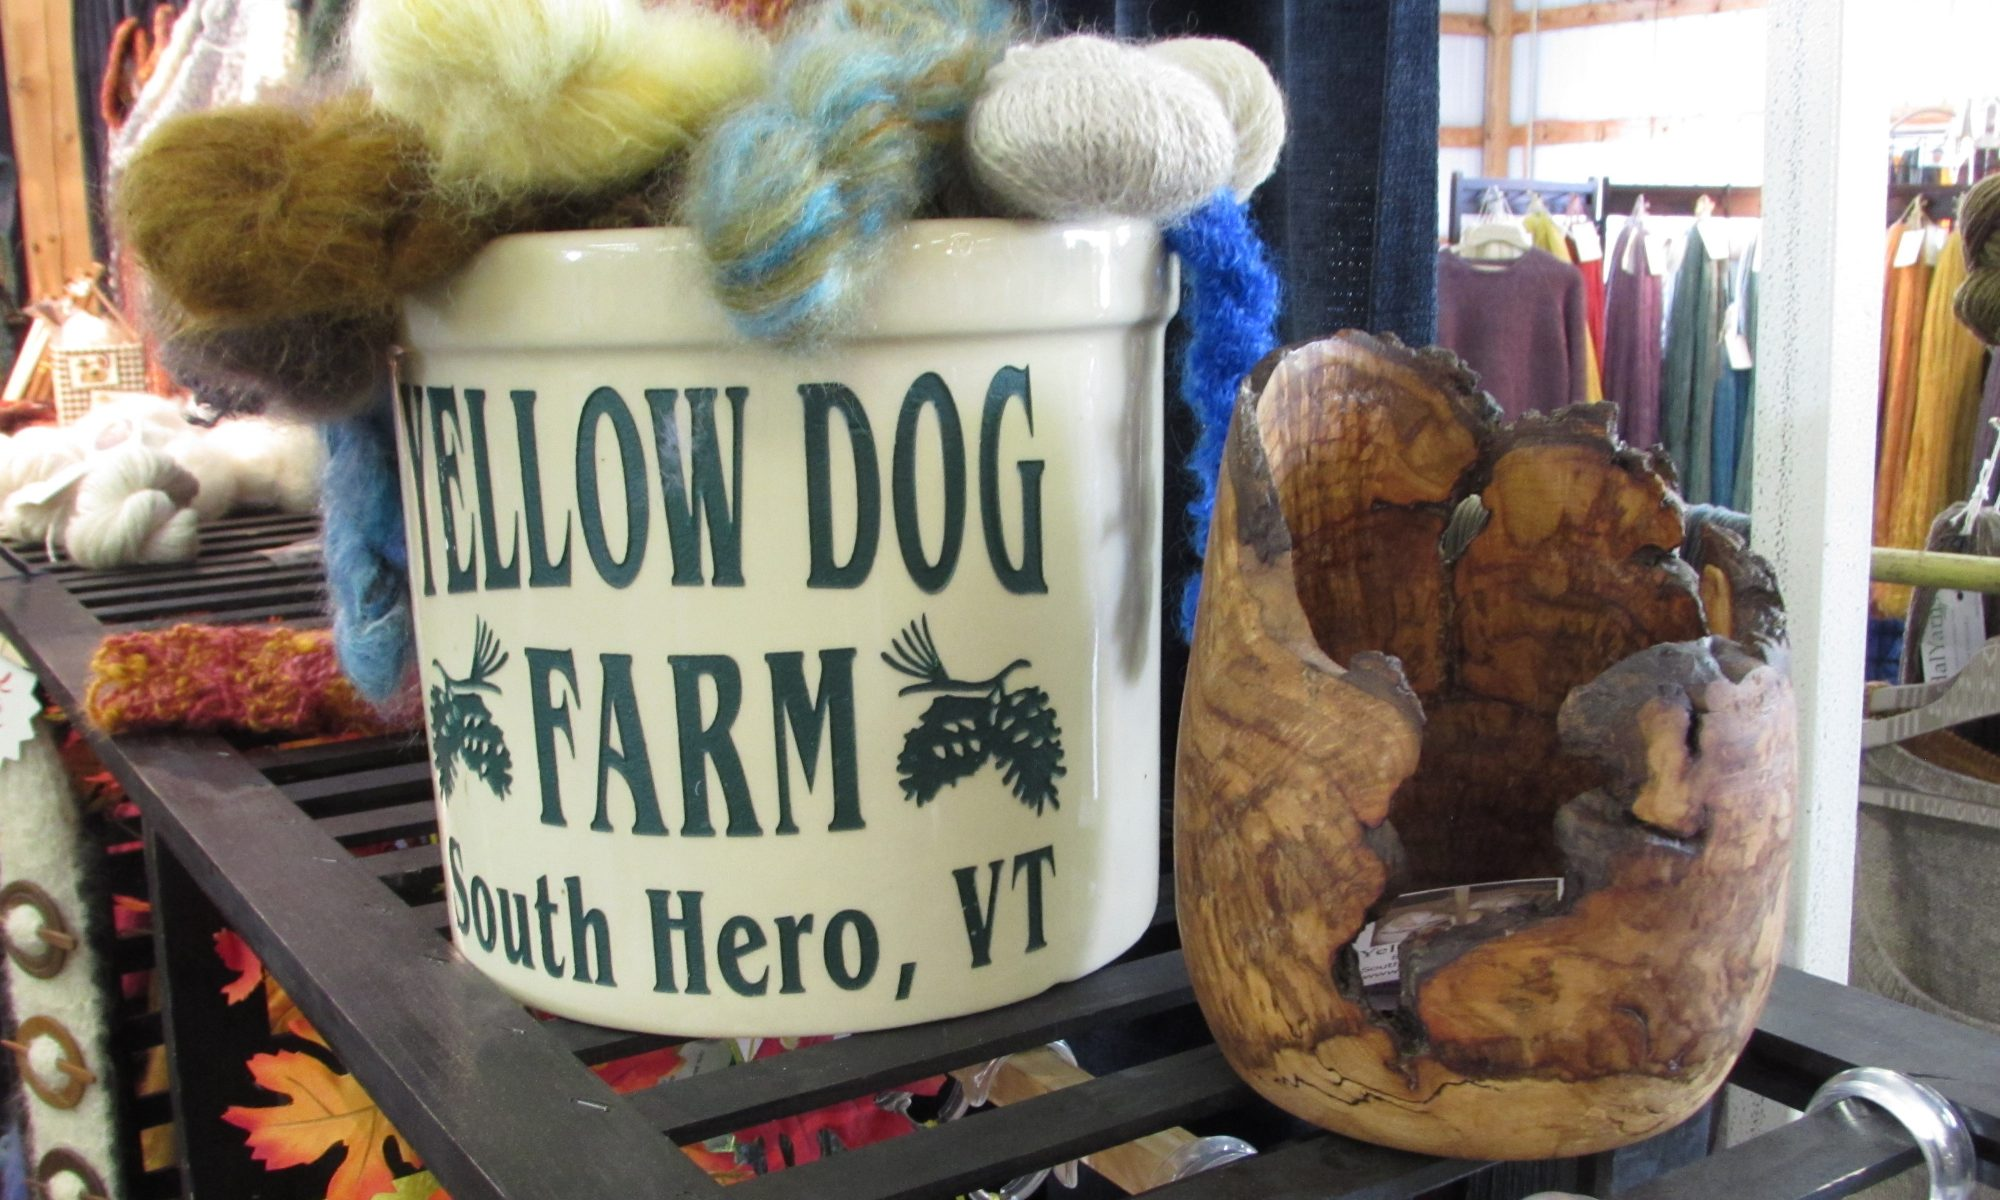 Yellow Dog Farm